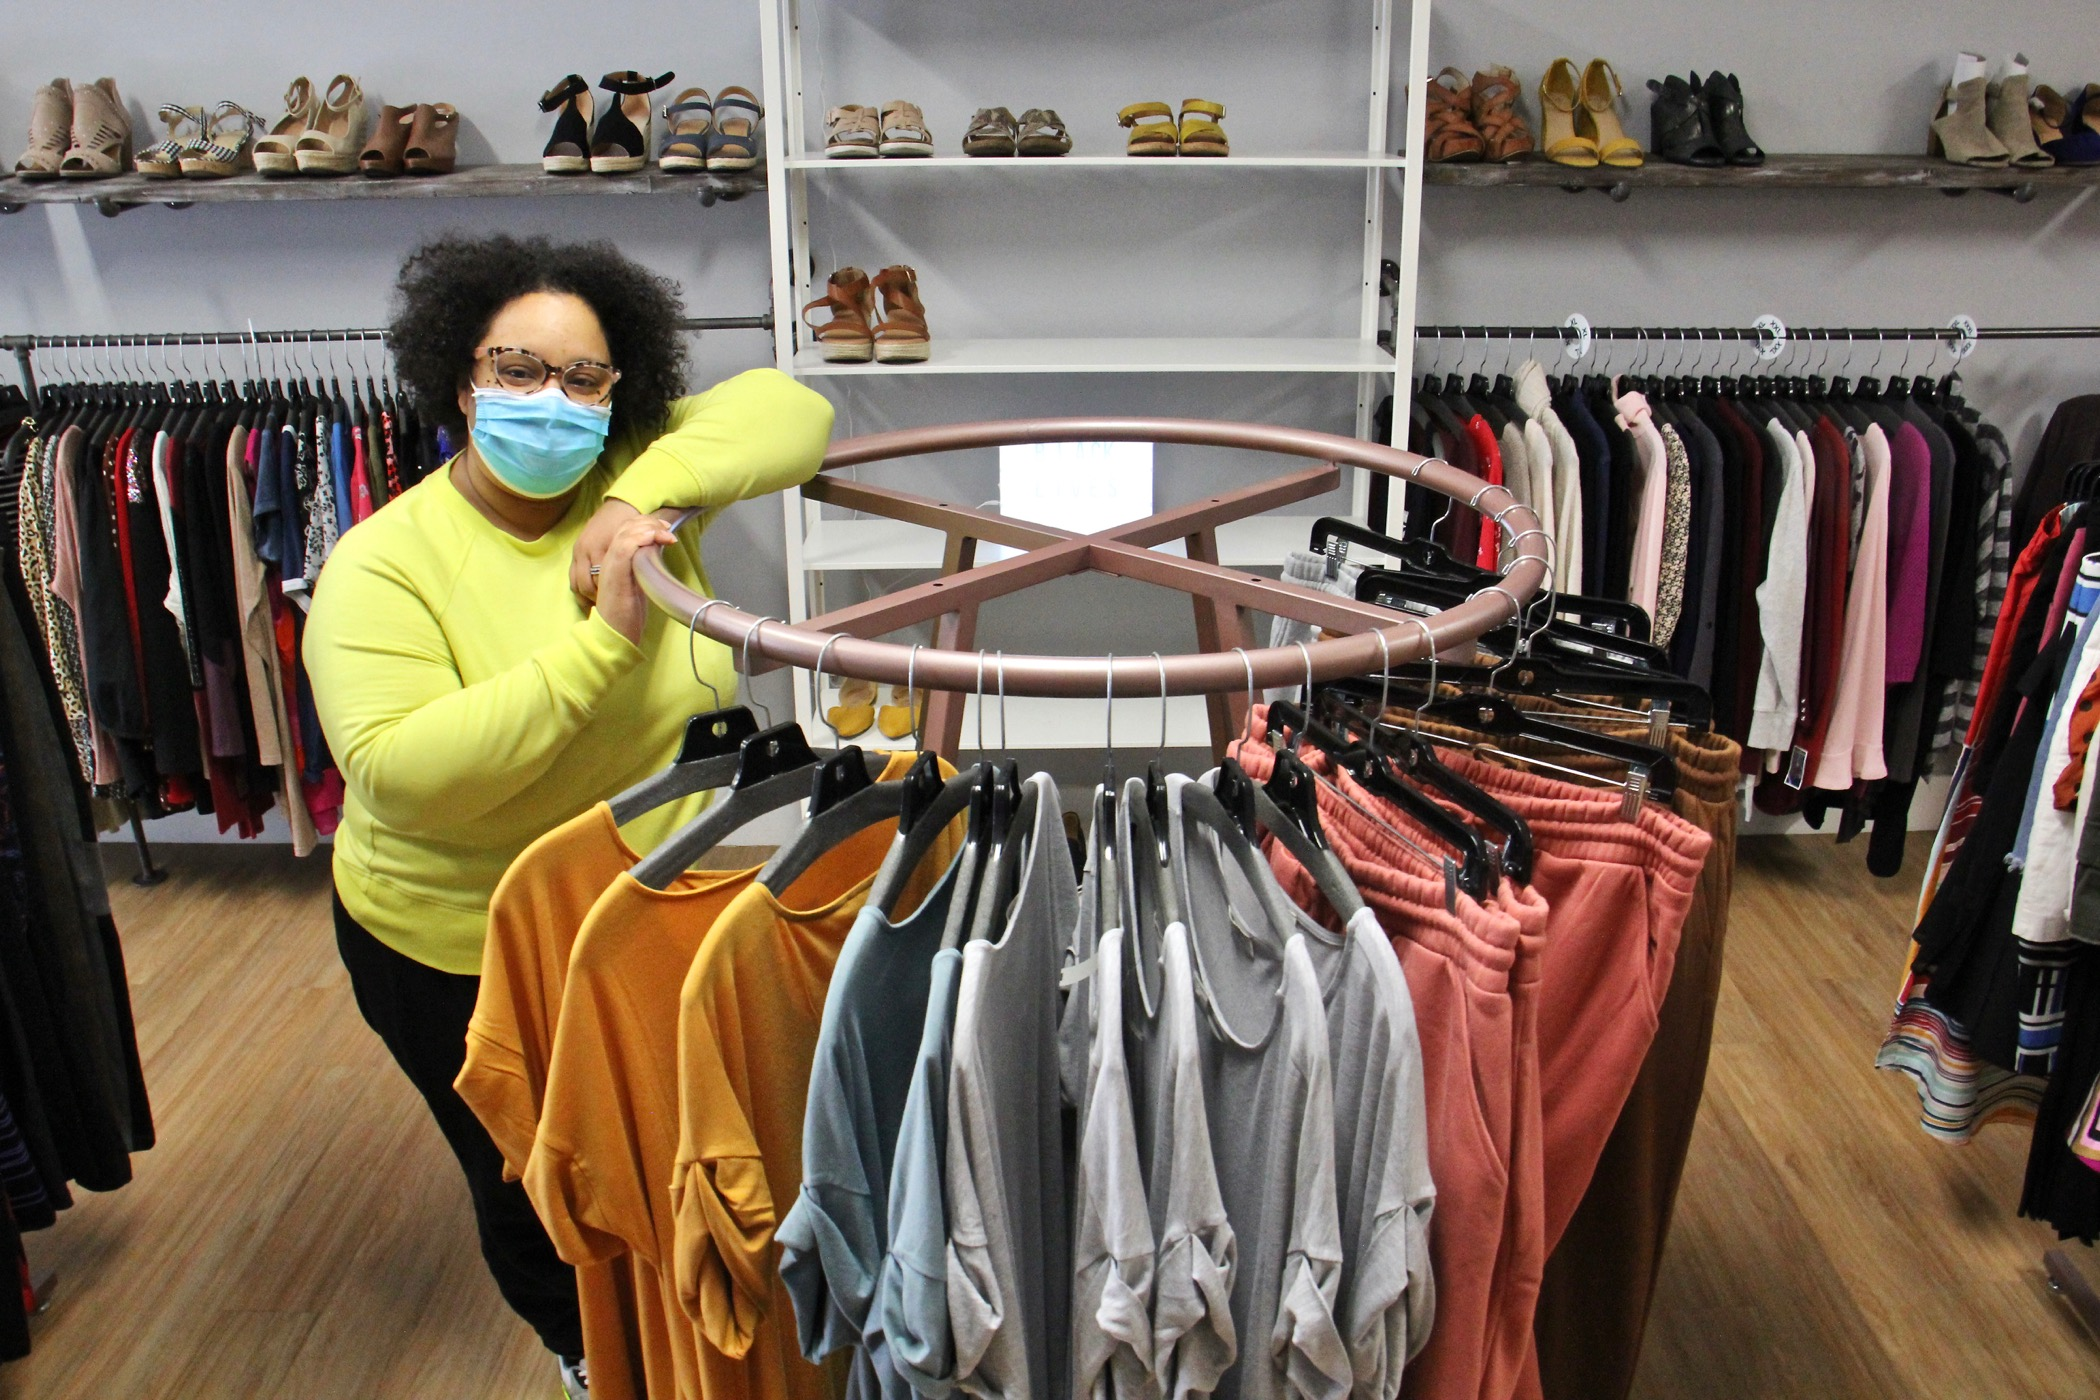 Adrienne Ray smiles while wearing a mask next to a circular rack of clothing